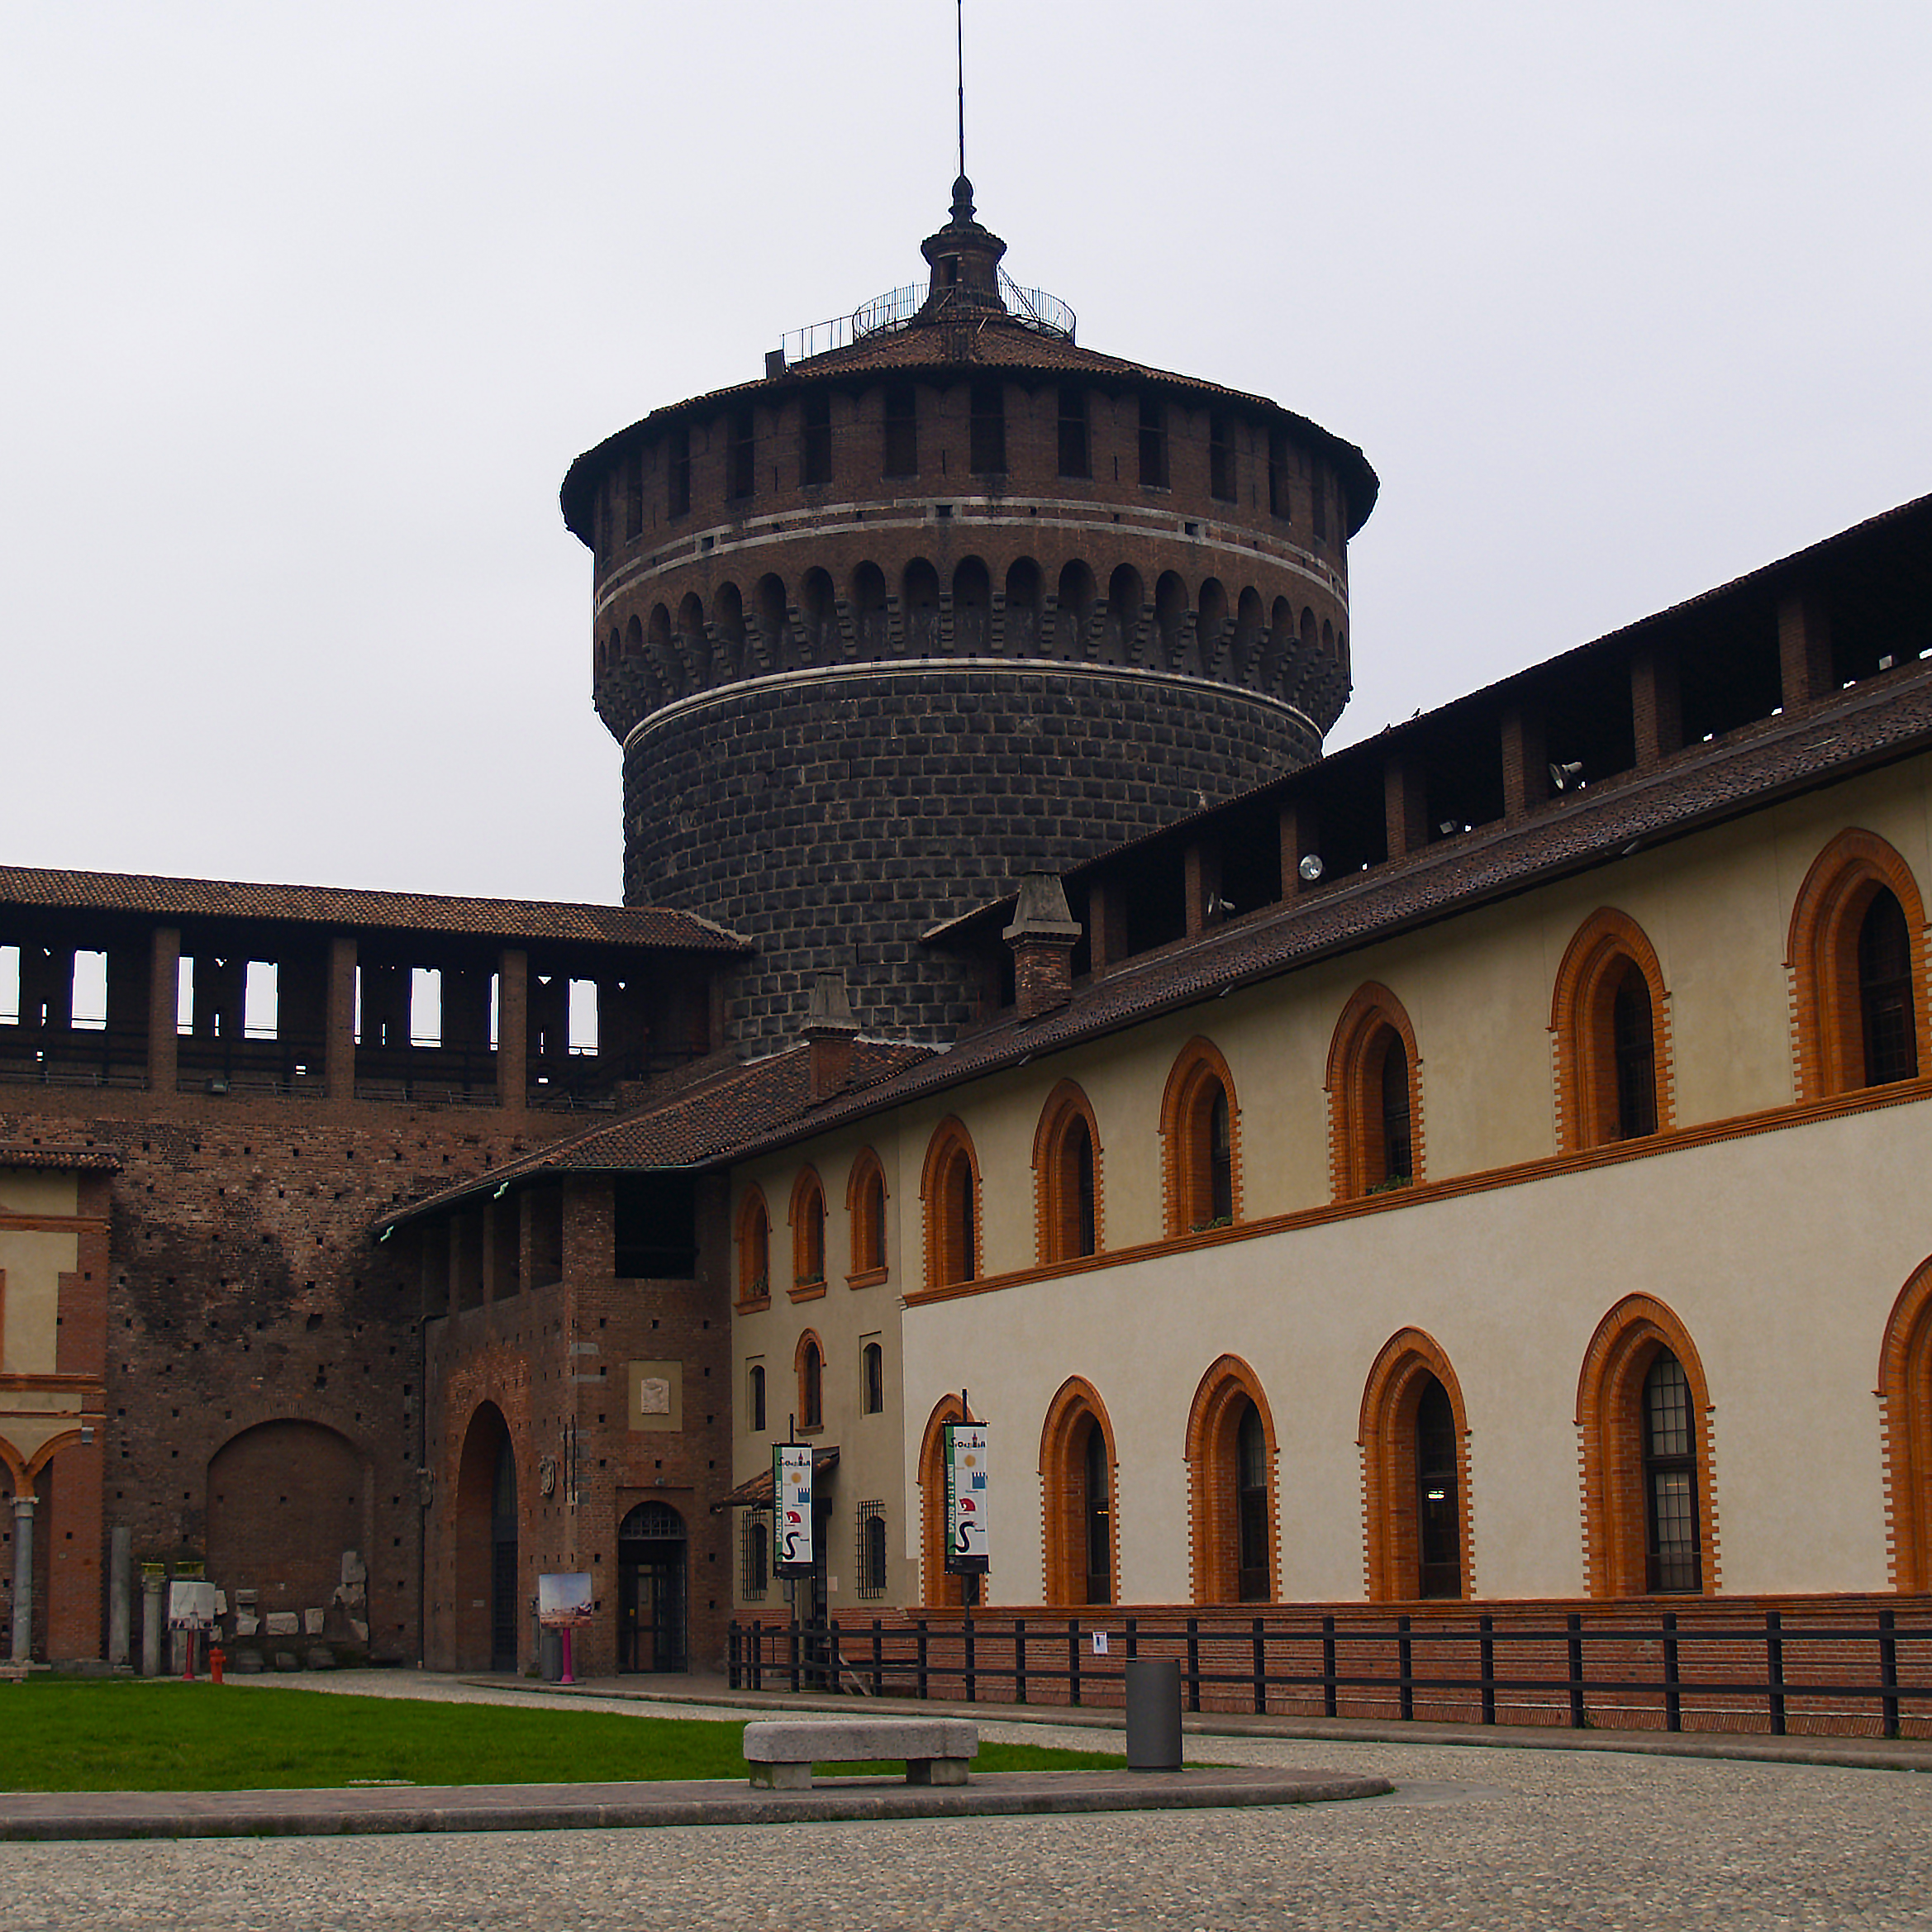 Crenelation Fort, Milan Italy